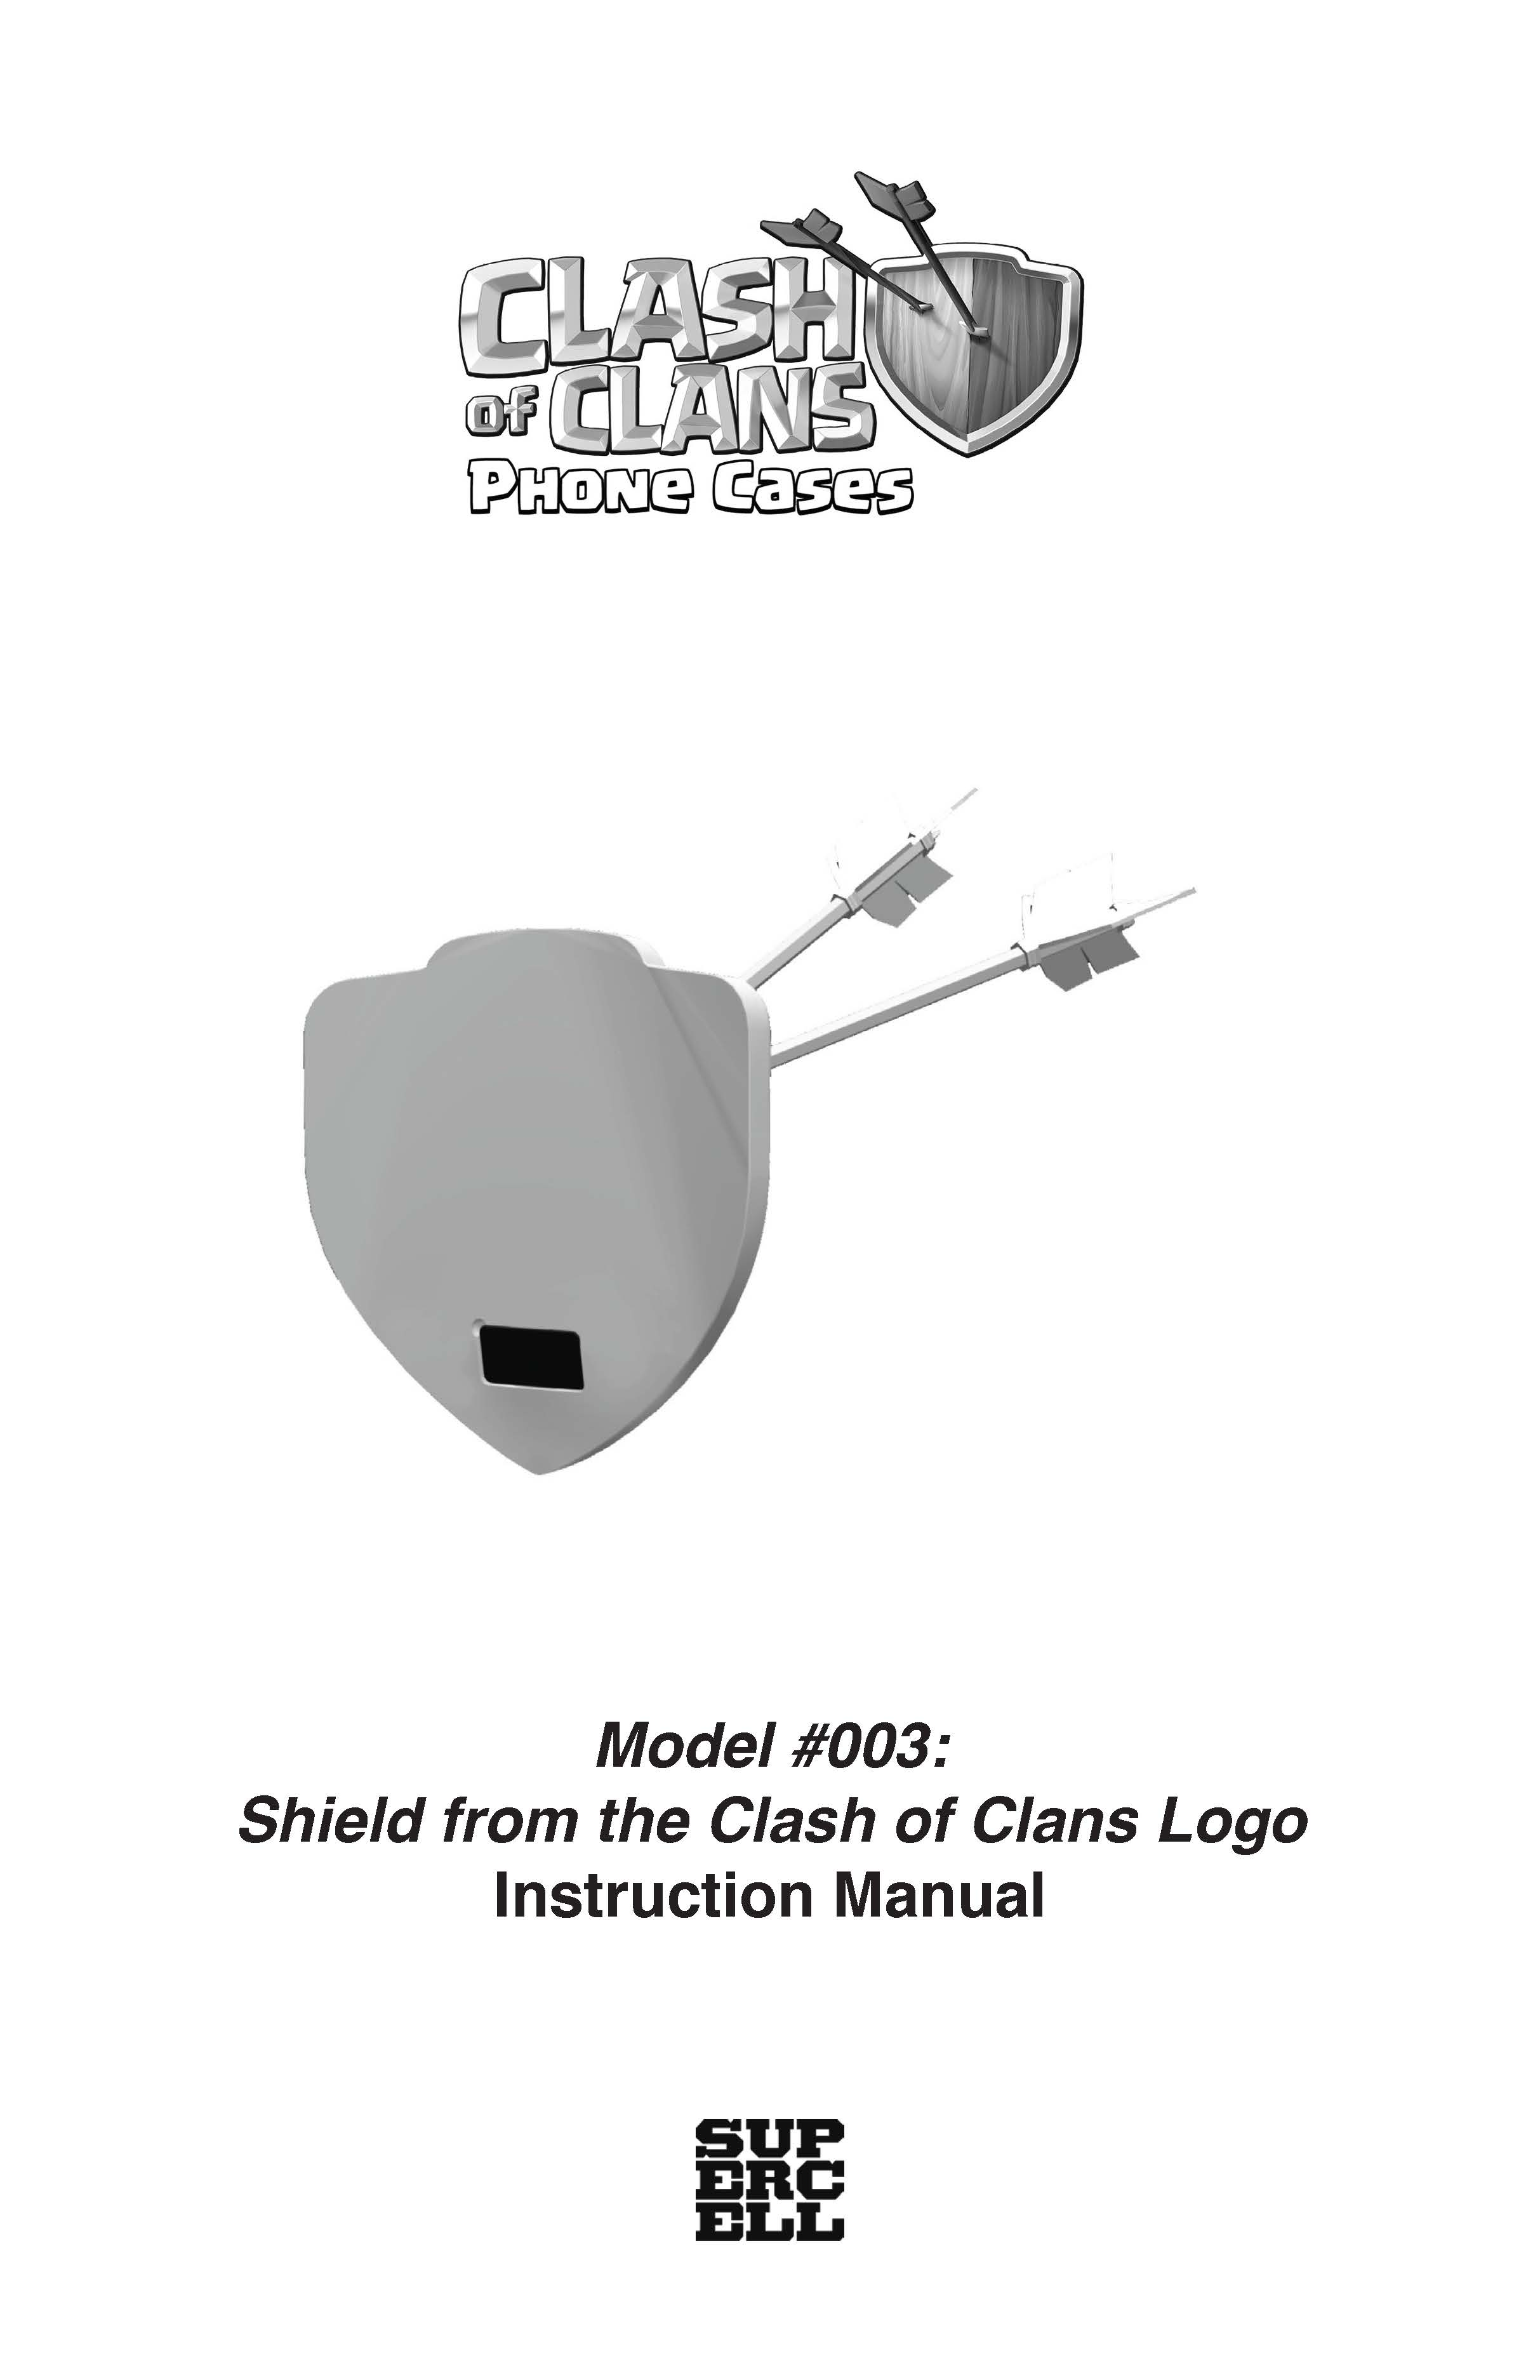 Clash-of-Clans-Phone-Cases-Instruction-Manual-Model-003-Shield-from-the-Clash-of-Clans-Logo_Page_1.jpg